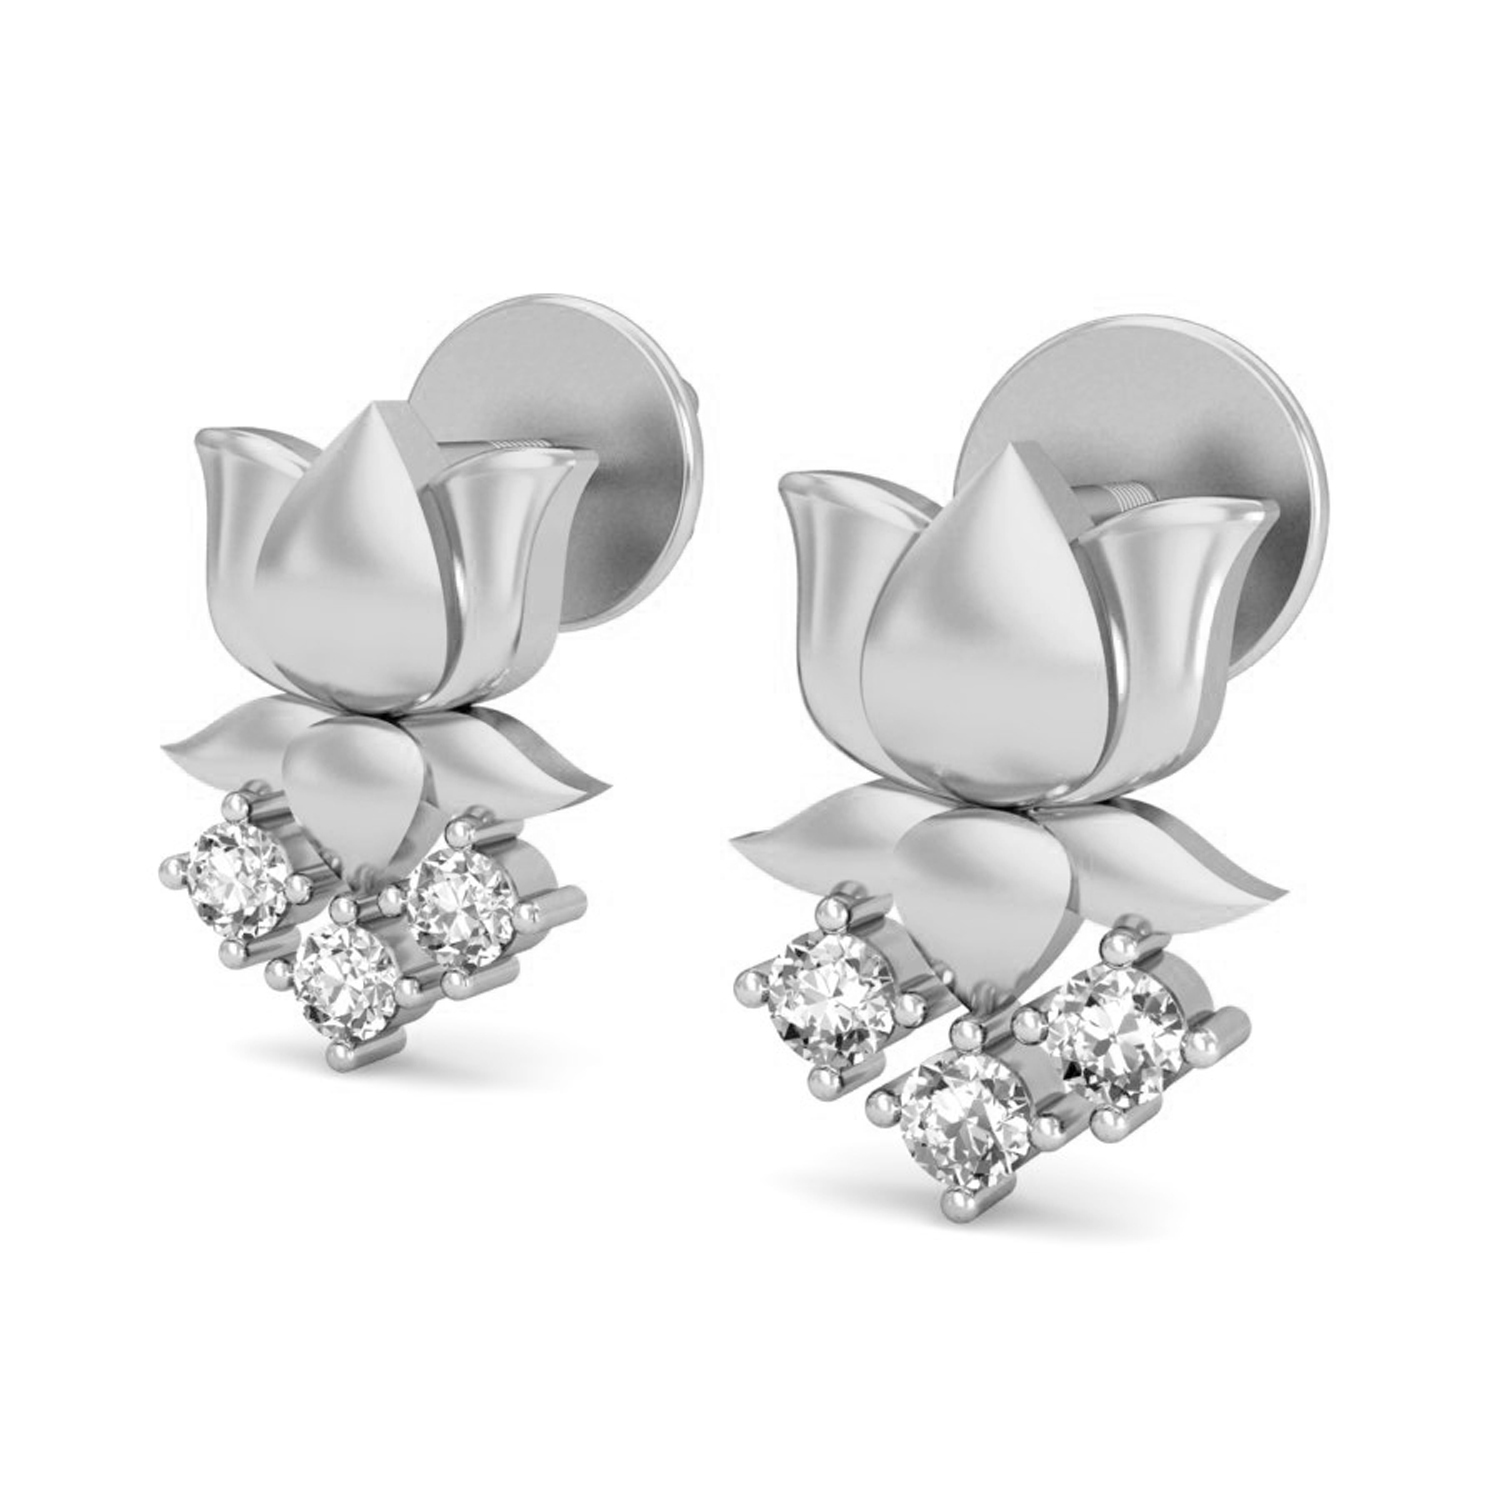 jewels online heart gia eco christies reports s diamond shaped with christie stud earrings